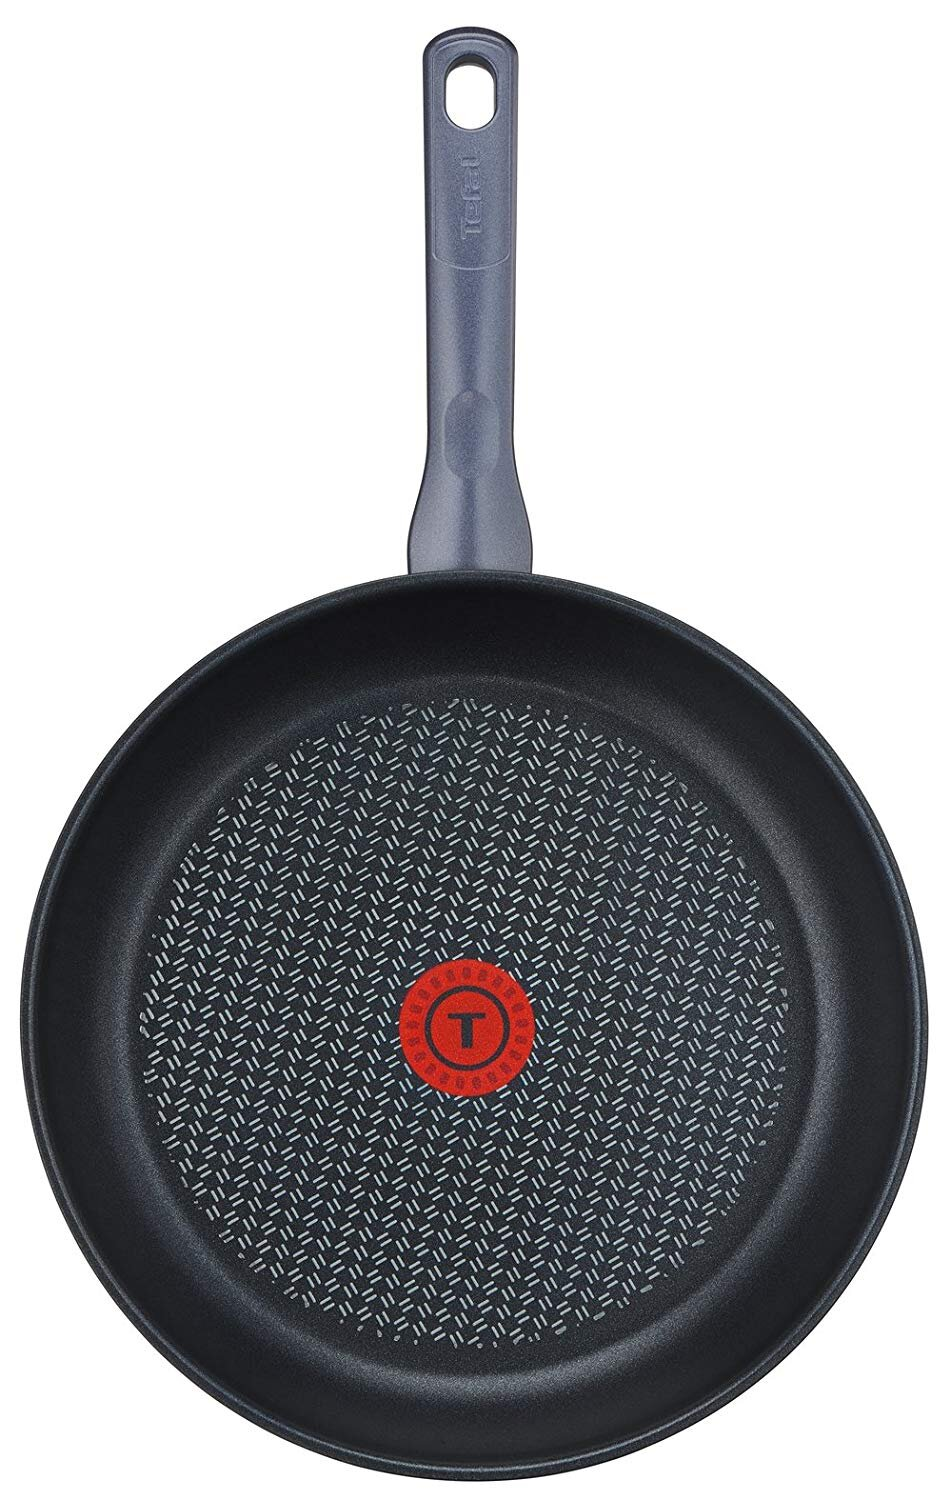 http://makow84.pl/Patelnie/Daily-Cook/patelnia-tefal-daily-cook-g713006-indukcja-5.jpg